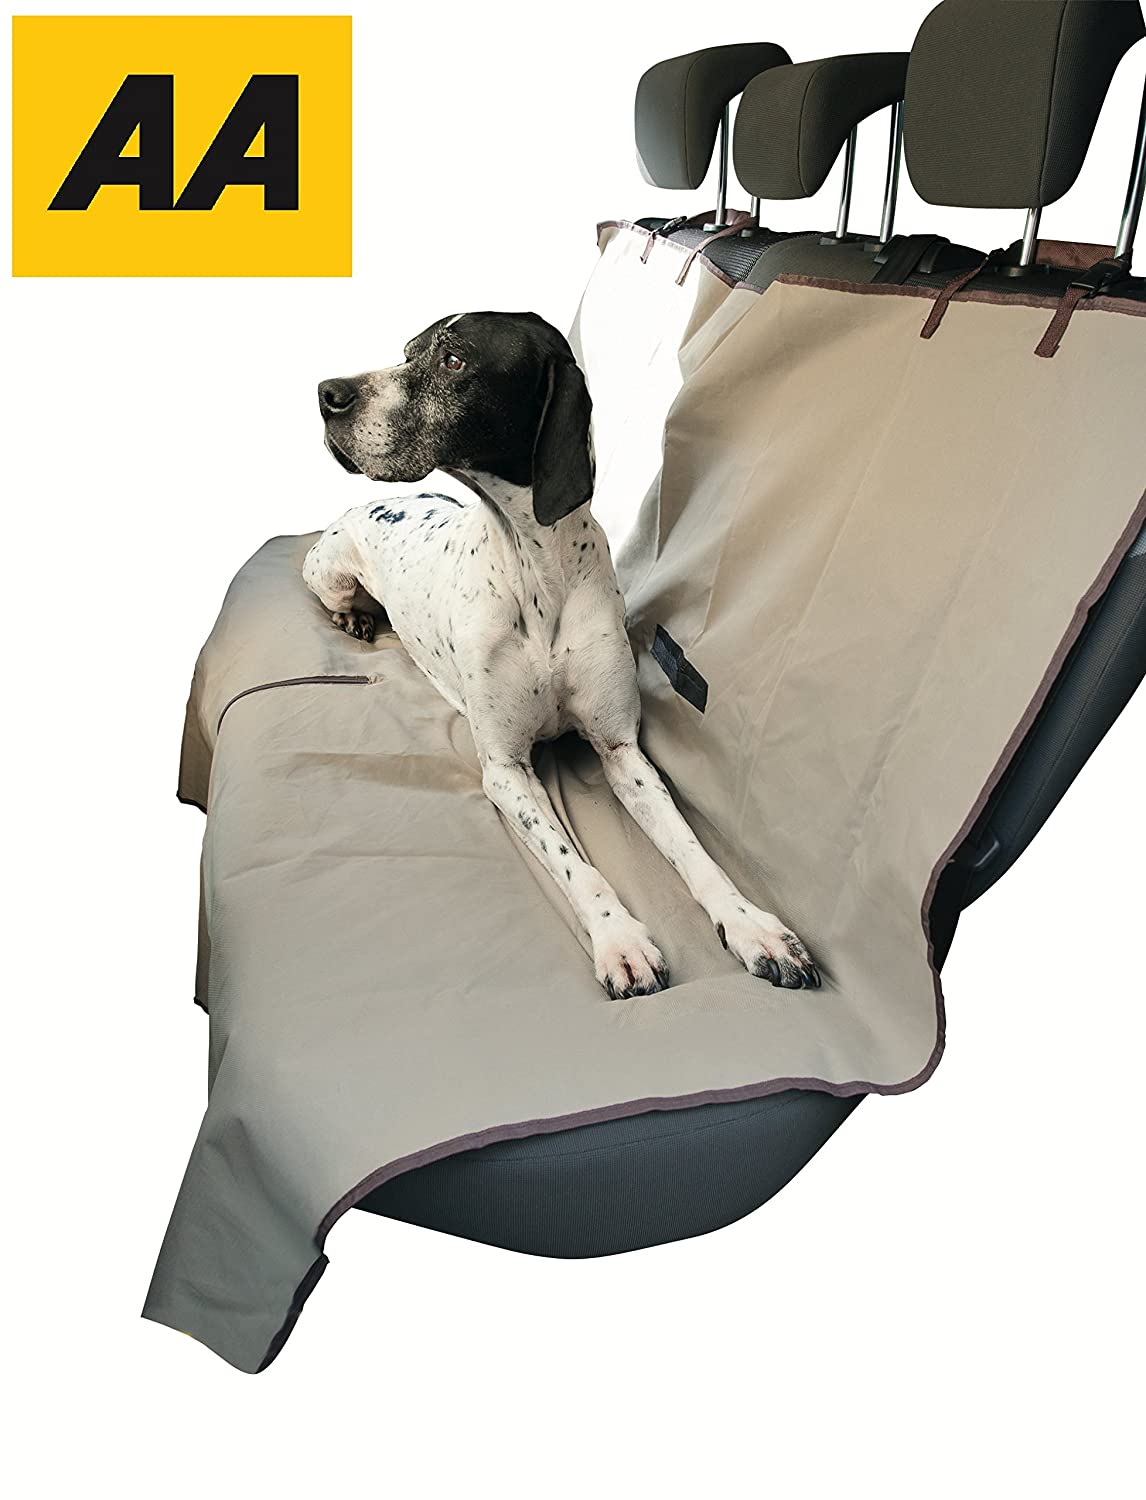 Dog Seat Cover For Pets And Kids Protects Your Rear Seats From Dirt Hair Spills